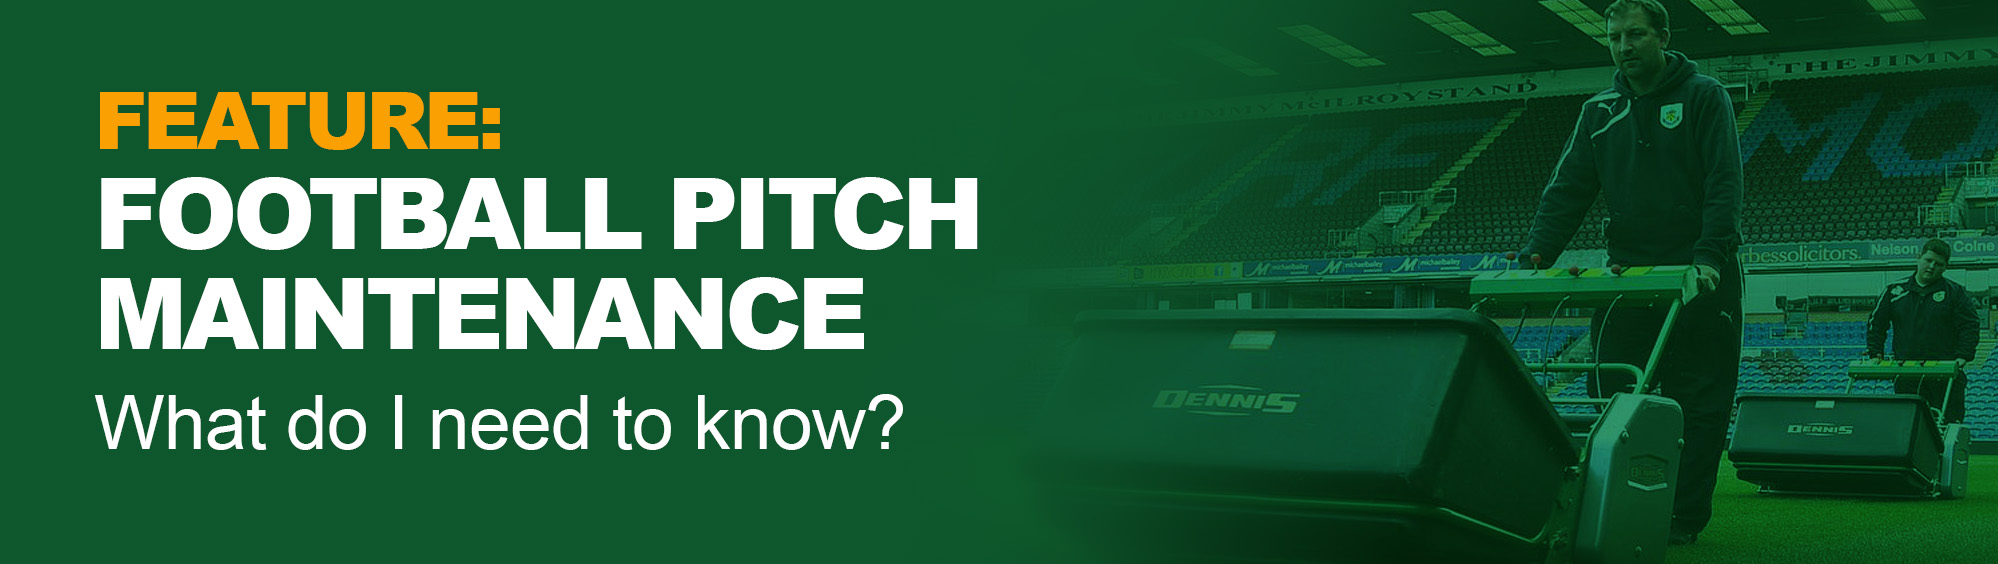 Football Pitch Maintenance - What do I need to know?